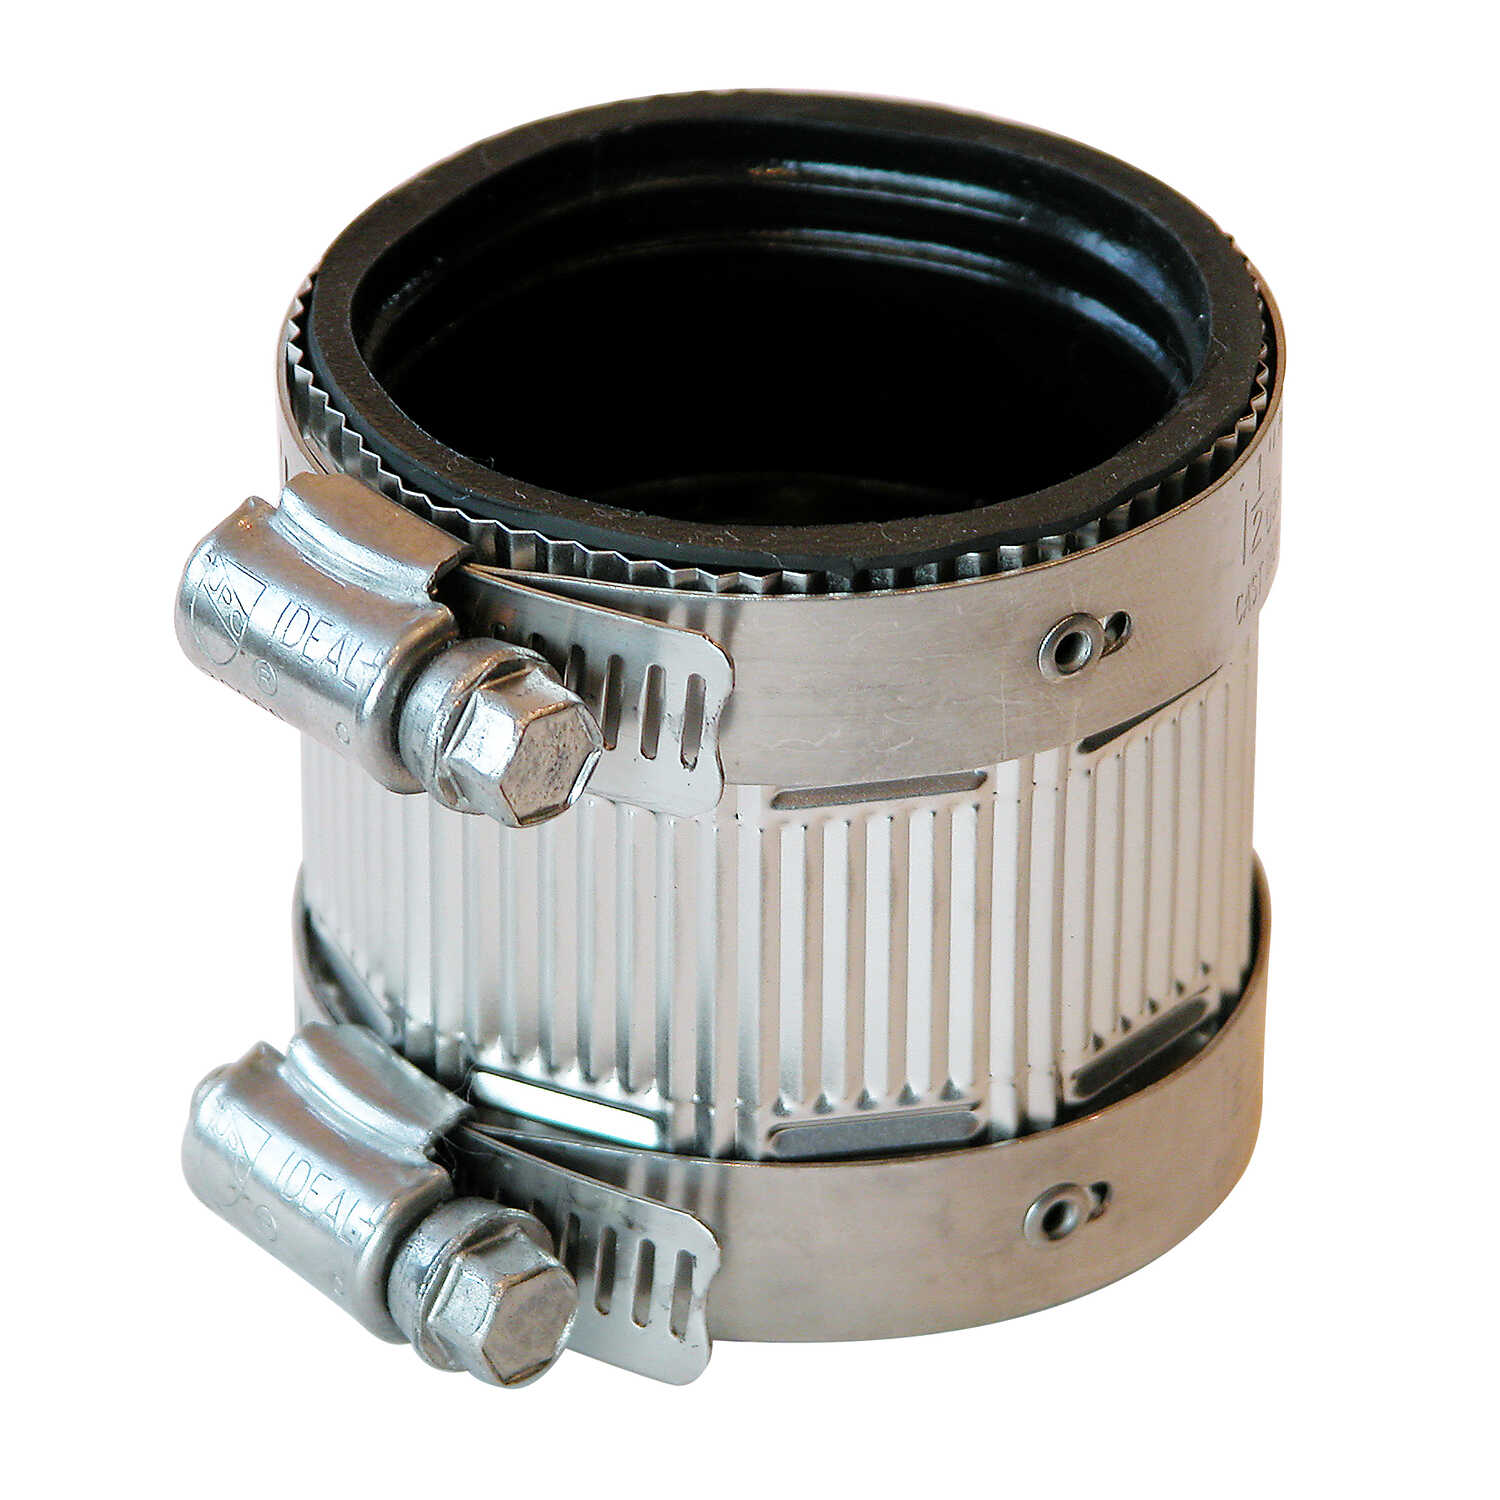 Fernco  Schedule 40  1-1/2 in. Hub   x 1-1/2 in. Dia. Hub  Neoprene Rubber  No Hub Coupling